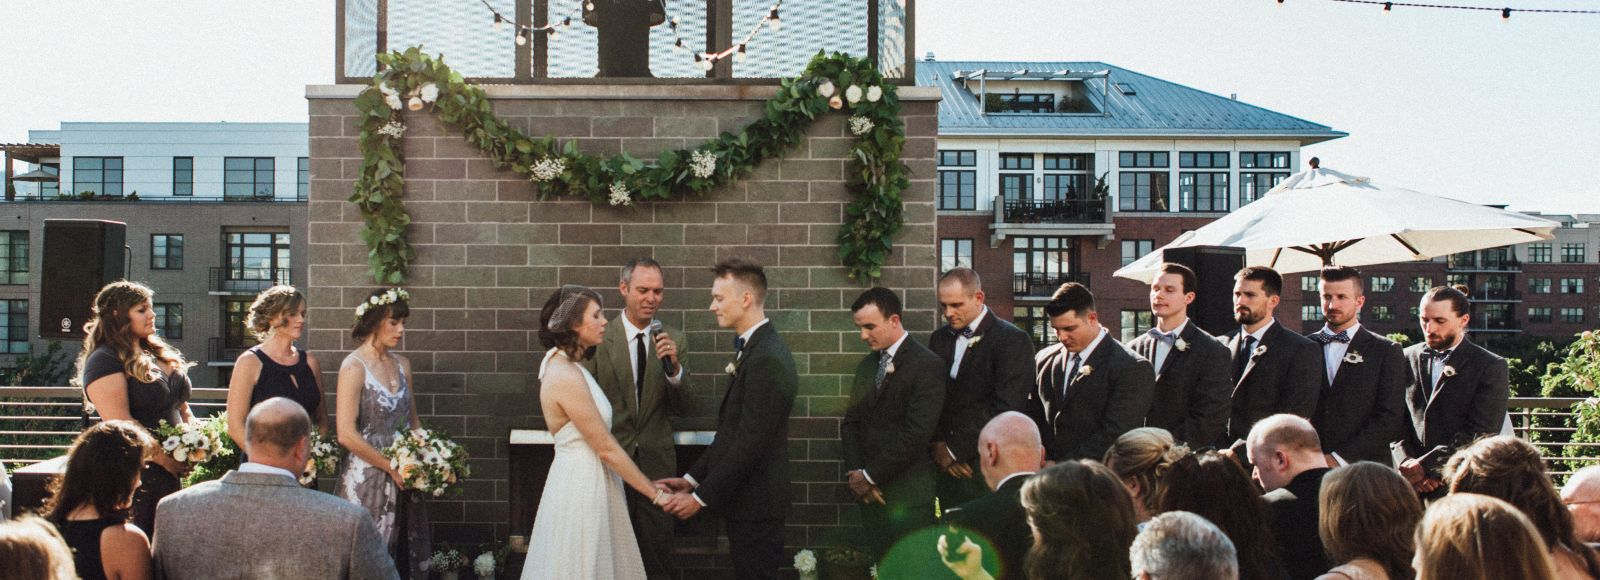 ceremony on terrace